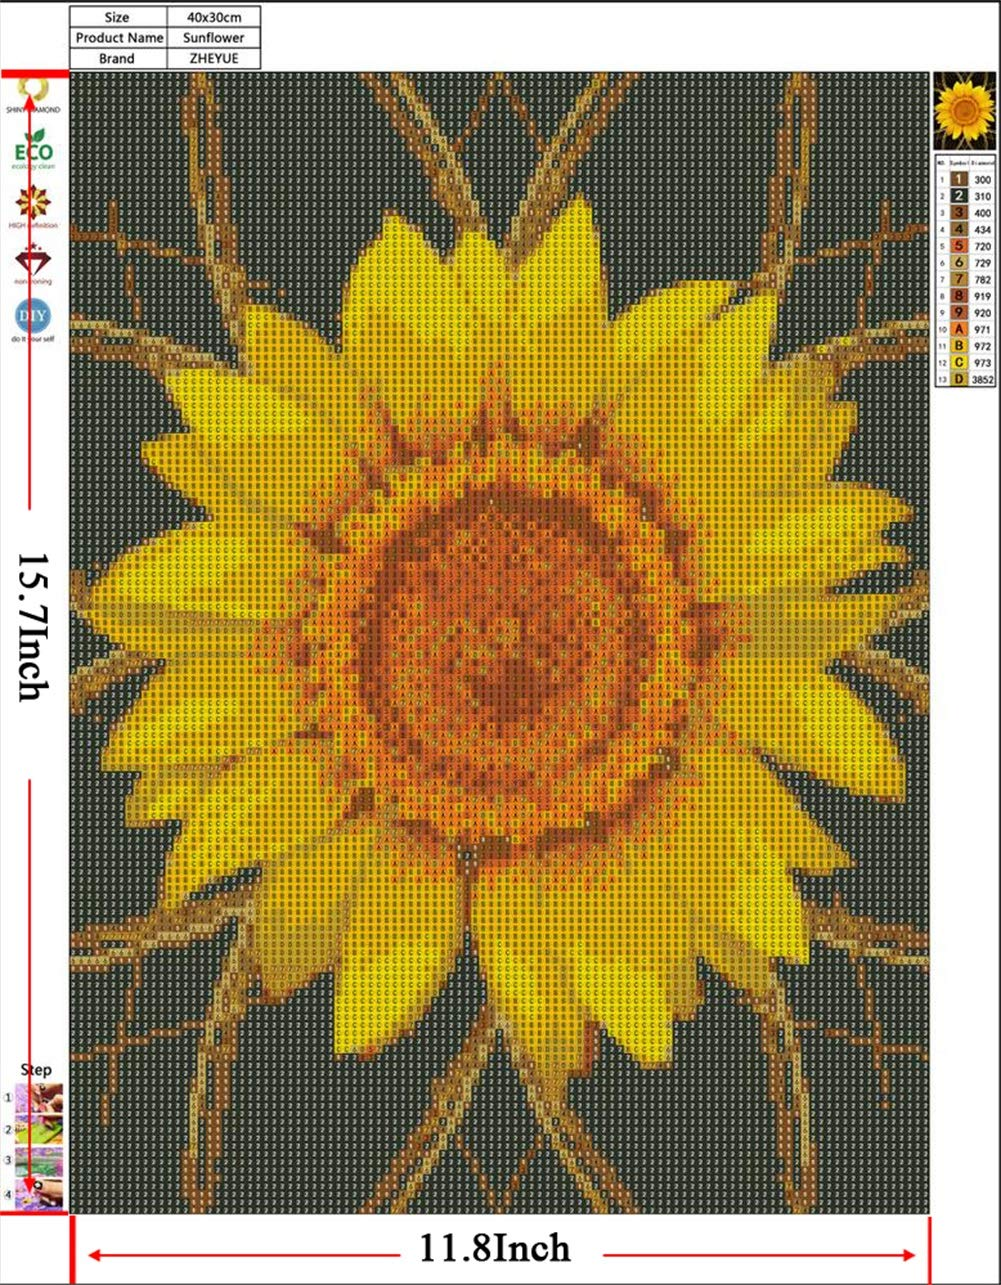 Diamond Painting Kits for Adults Full Drill Dandelion Ladybug 5D Diamond Dotz Kits with Paint by Number Kits Great Decor for Home,Living Room,Office,Kitchen,Shop